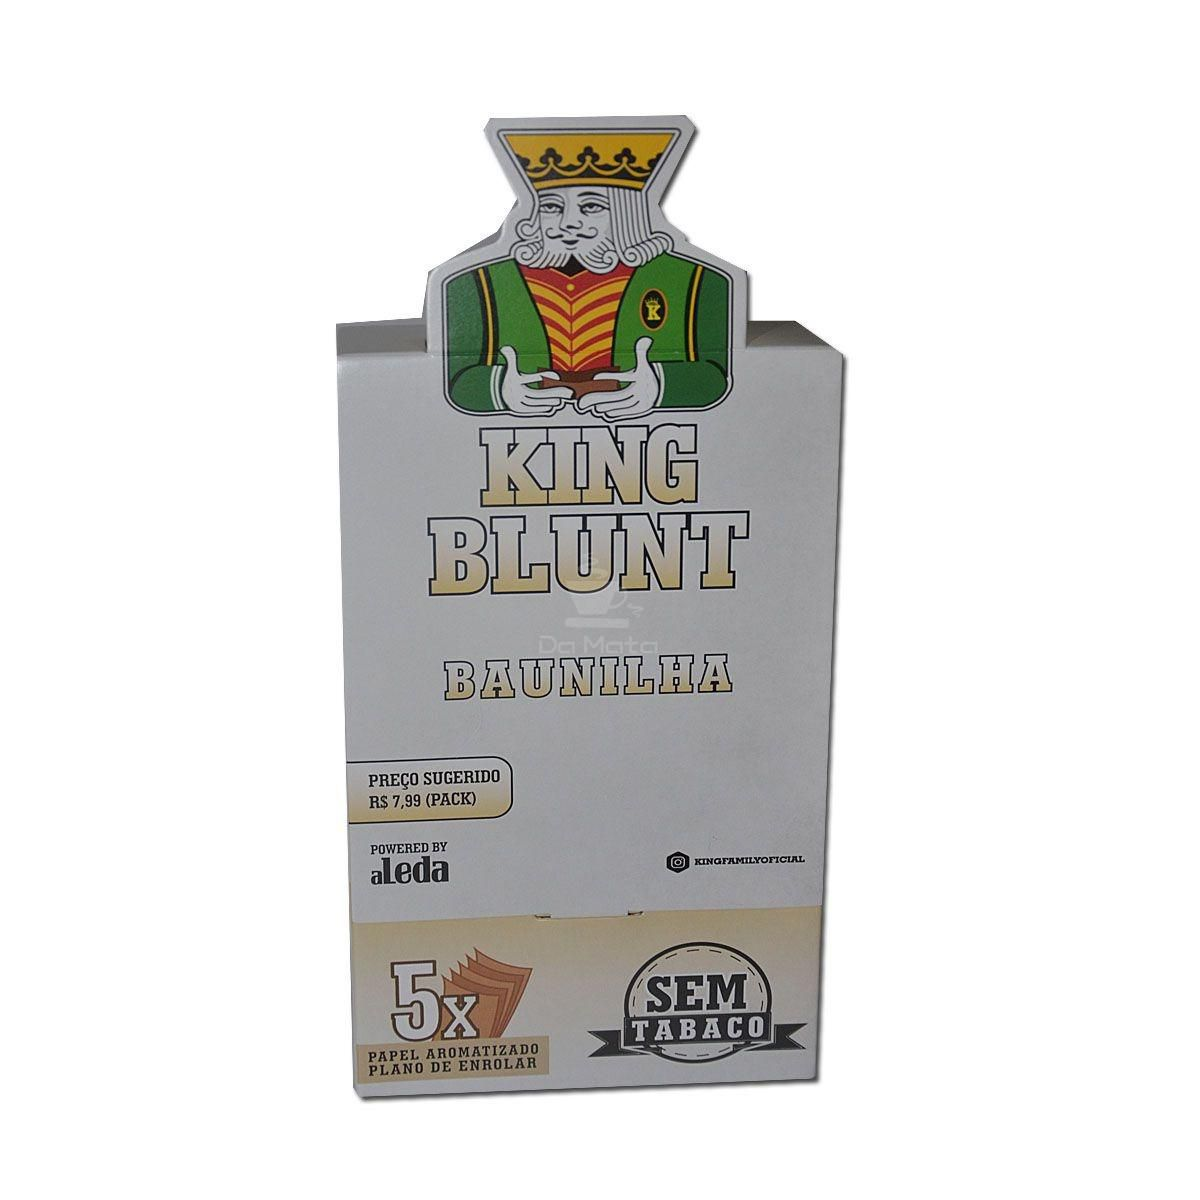 King Blunt - Baunilha- Caixa, 25 envelopes - 125 Blunts